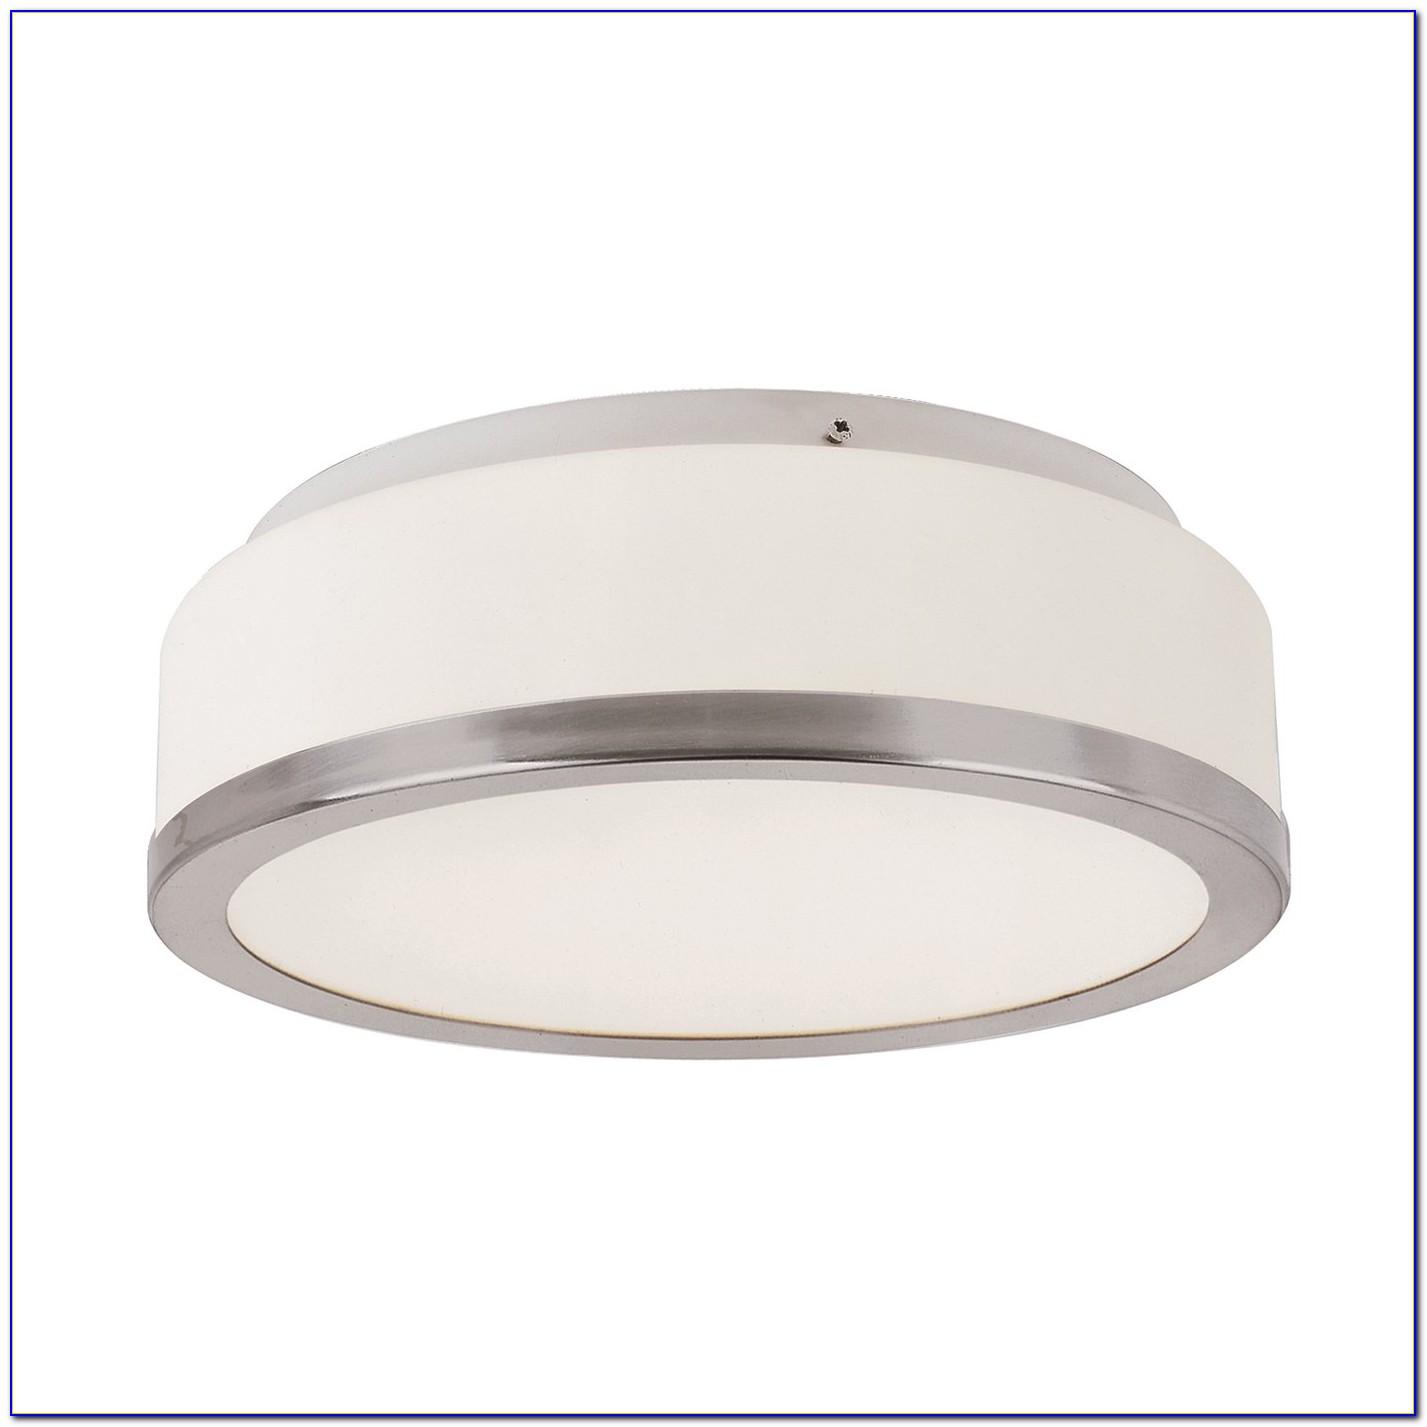 Round Fluorescent Ceiling Light Cover